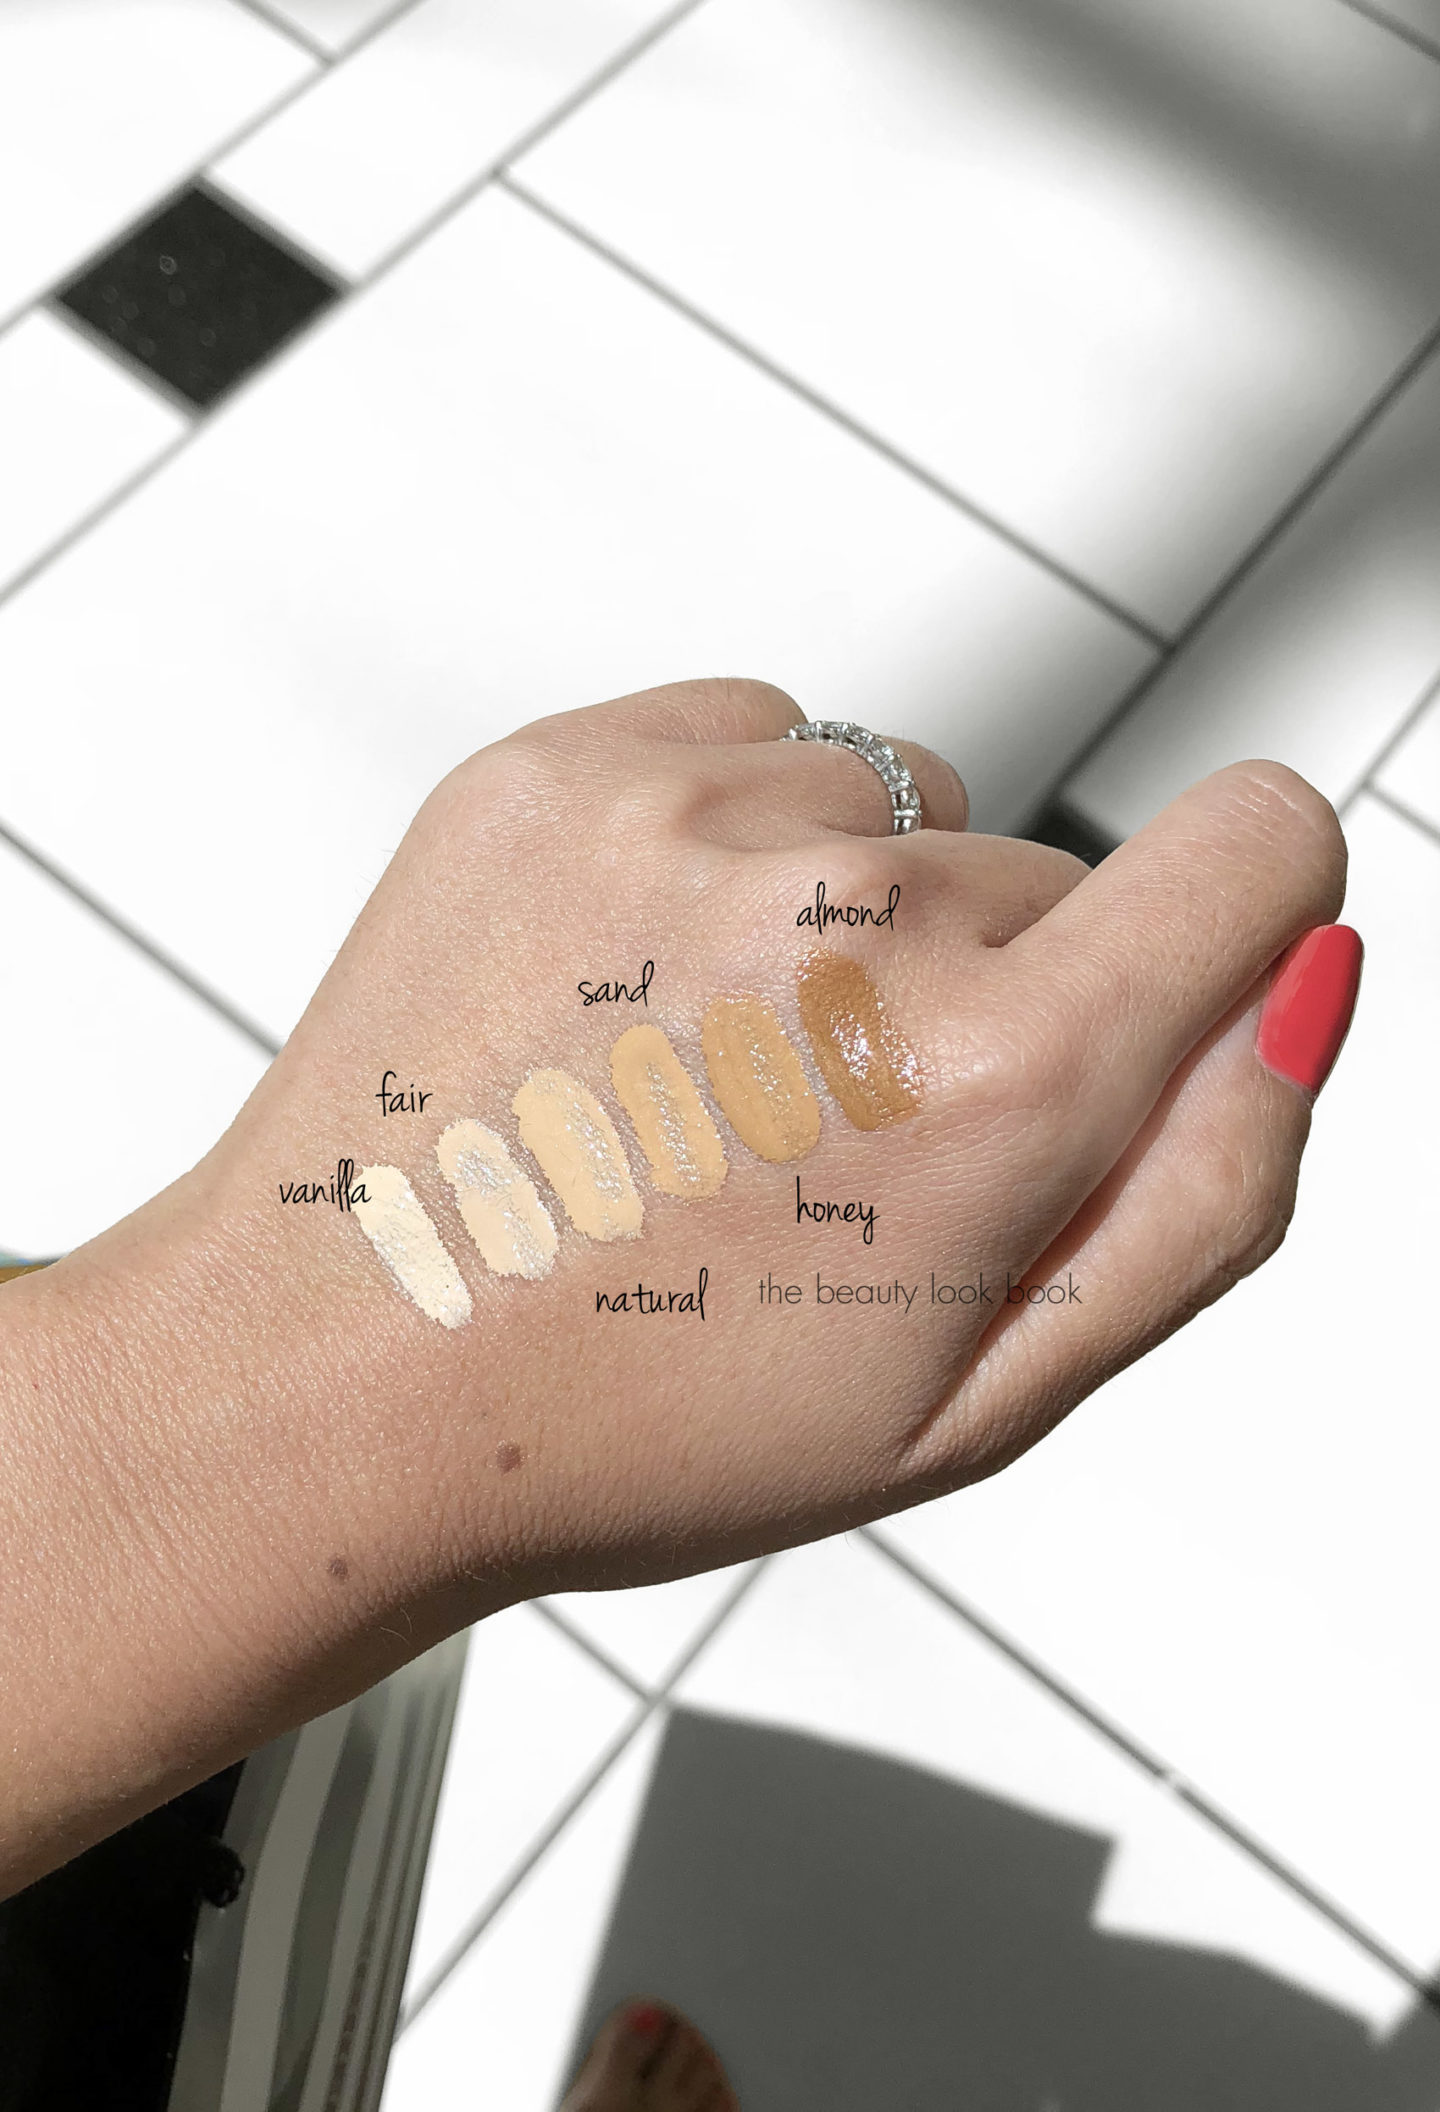 Hourglass Veil Retouching Fluid Swatches Vanilla, Fair, Natural, Sand, Honey and Almond via The Beauty Look Book